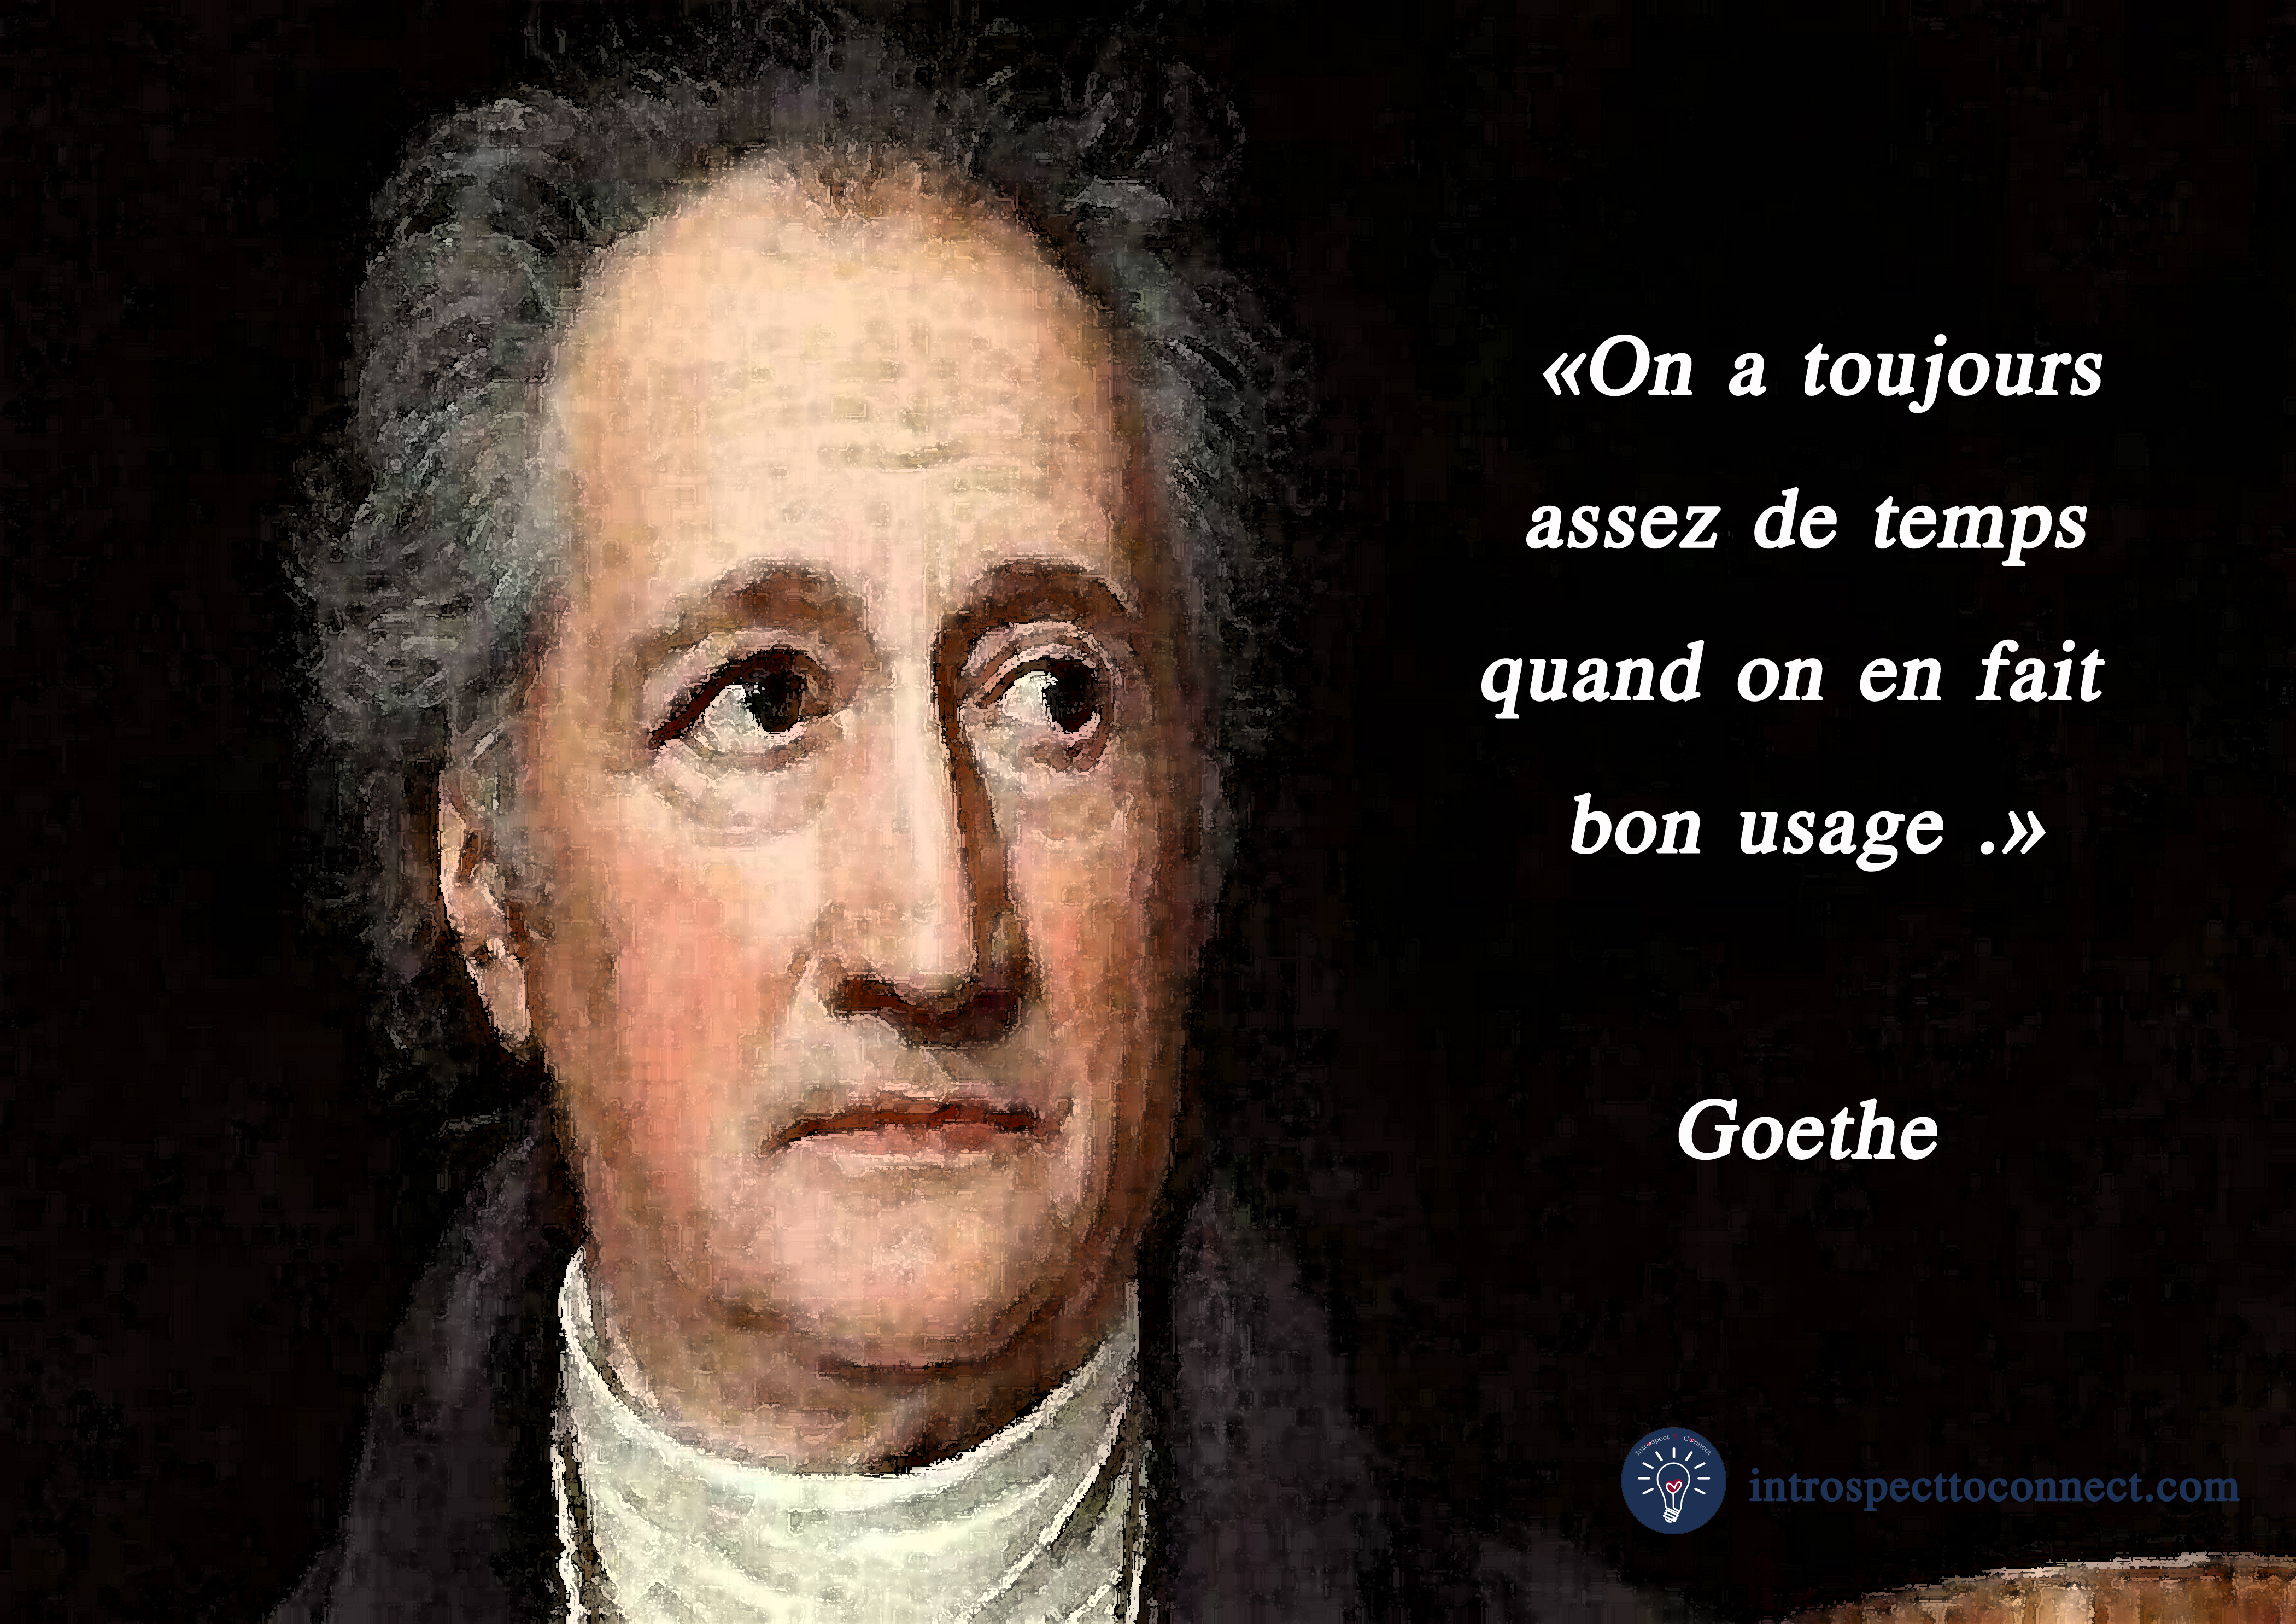 goethe-quote-1-copie